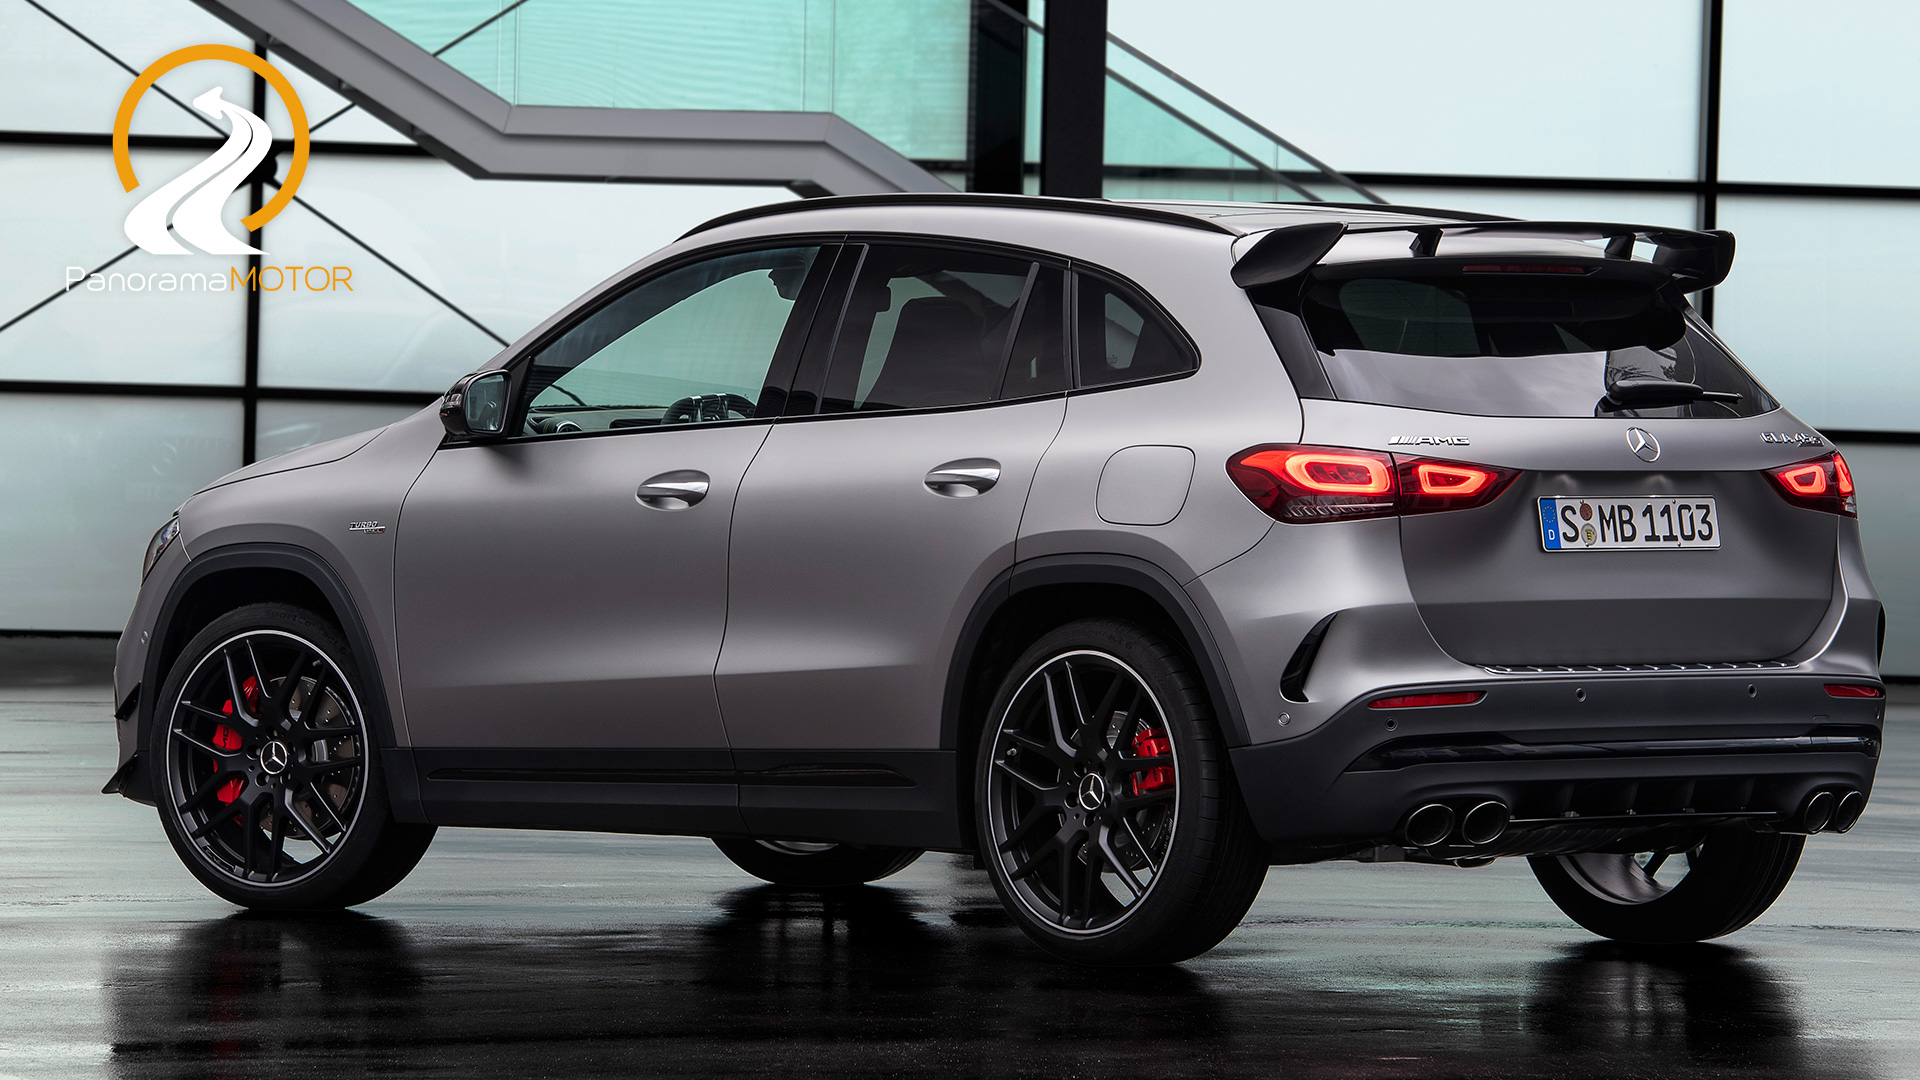 Mercedes AMG GLA 45 S 4MATIC+ 2020